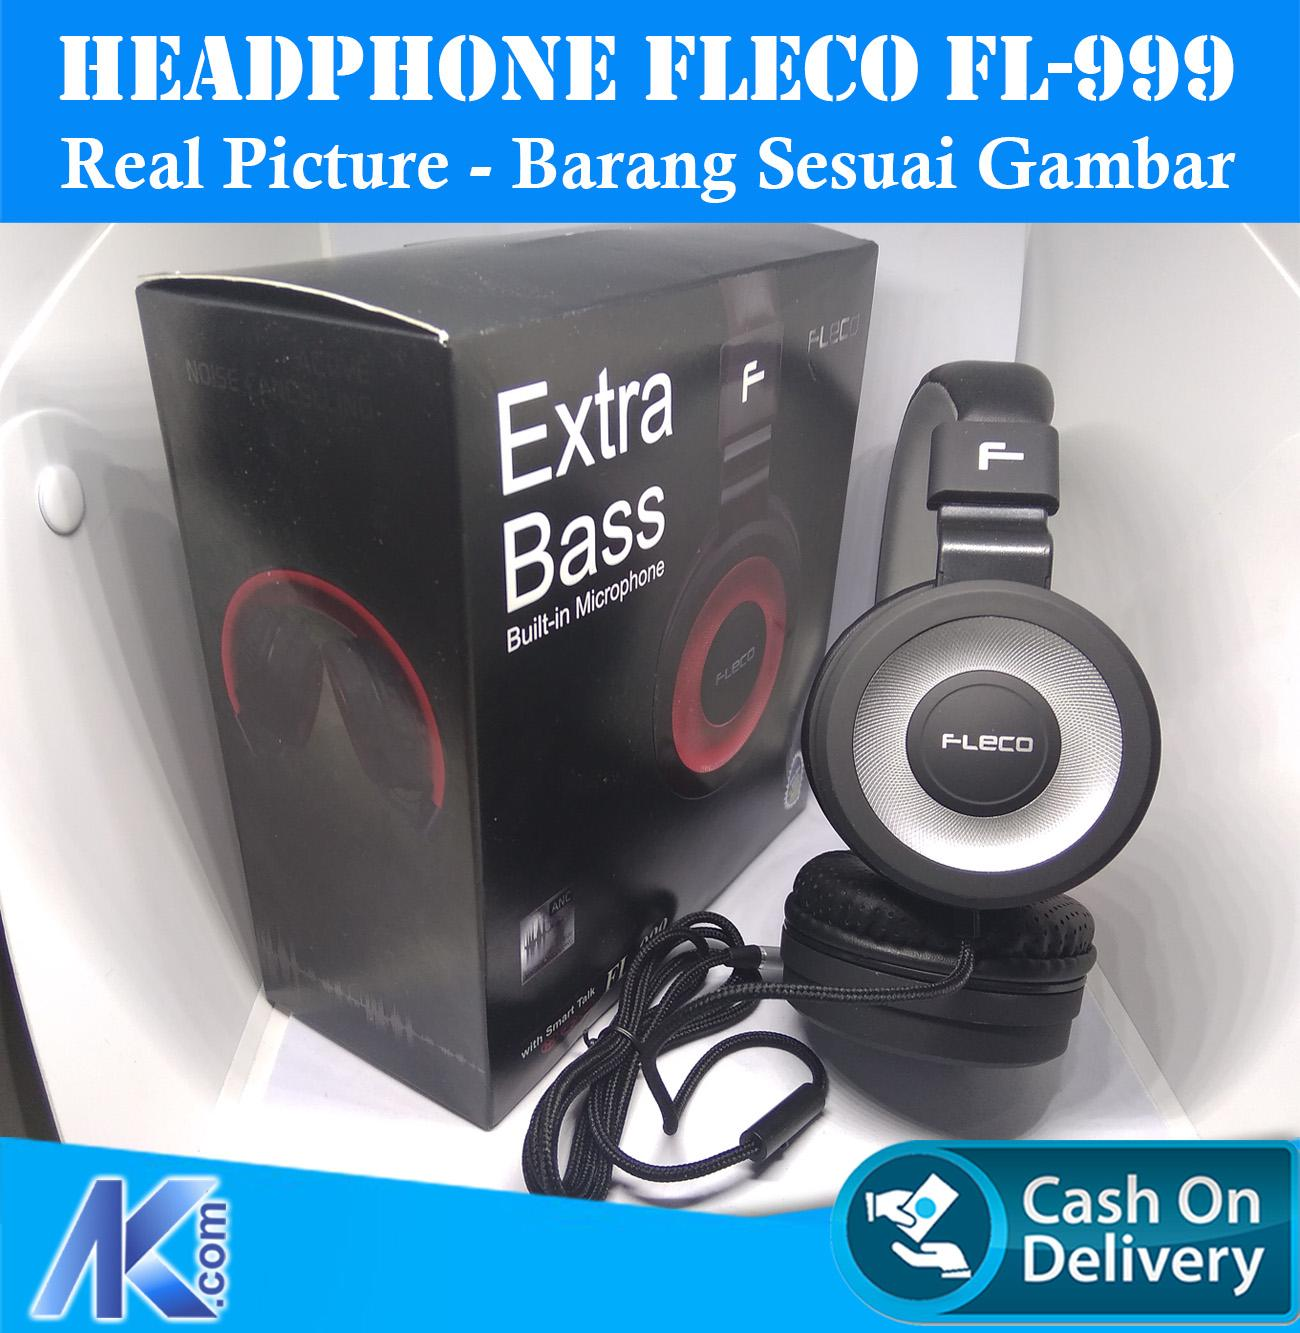 Fleco Original Super Bass Stereo Headset Handsfree Headphone Withmic Earphones Sumo Er 1 Sport Metal Music With Microphone Er1 Dijamin Nendang New Ready Stok Home Fl 999 Extra